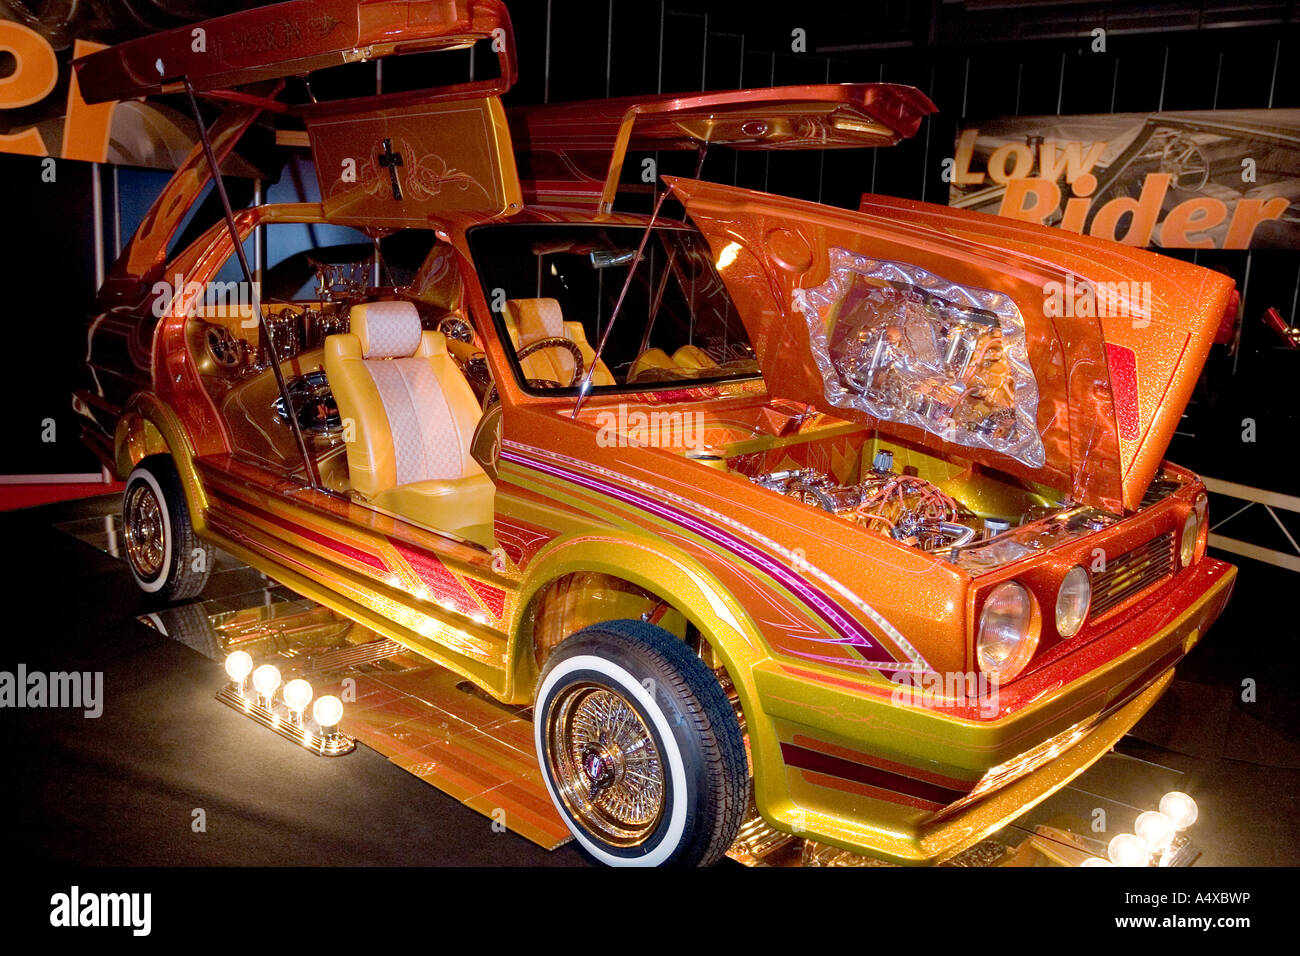 gilded low rider show car at the essen motor show nrw germany stock photo royalty free image. Black Bedroom Furniture Sets. Home Design Ideas